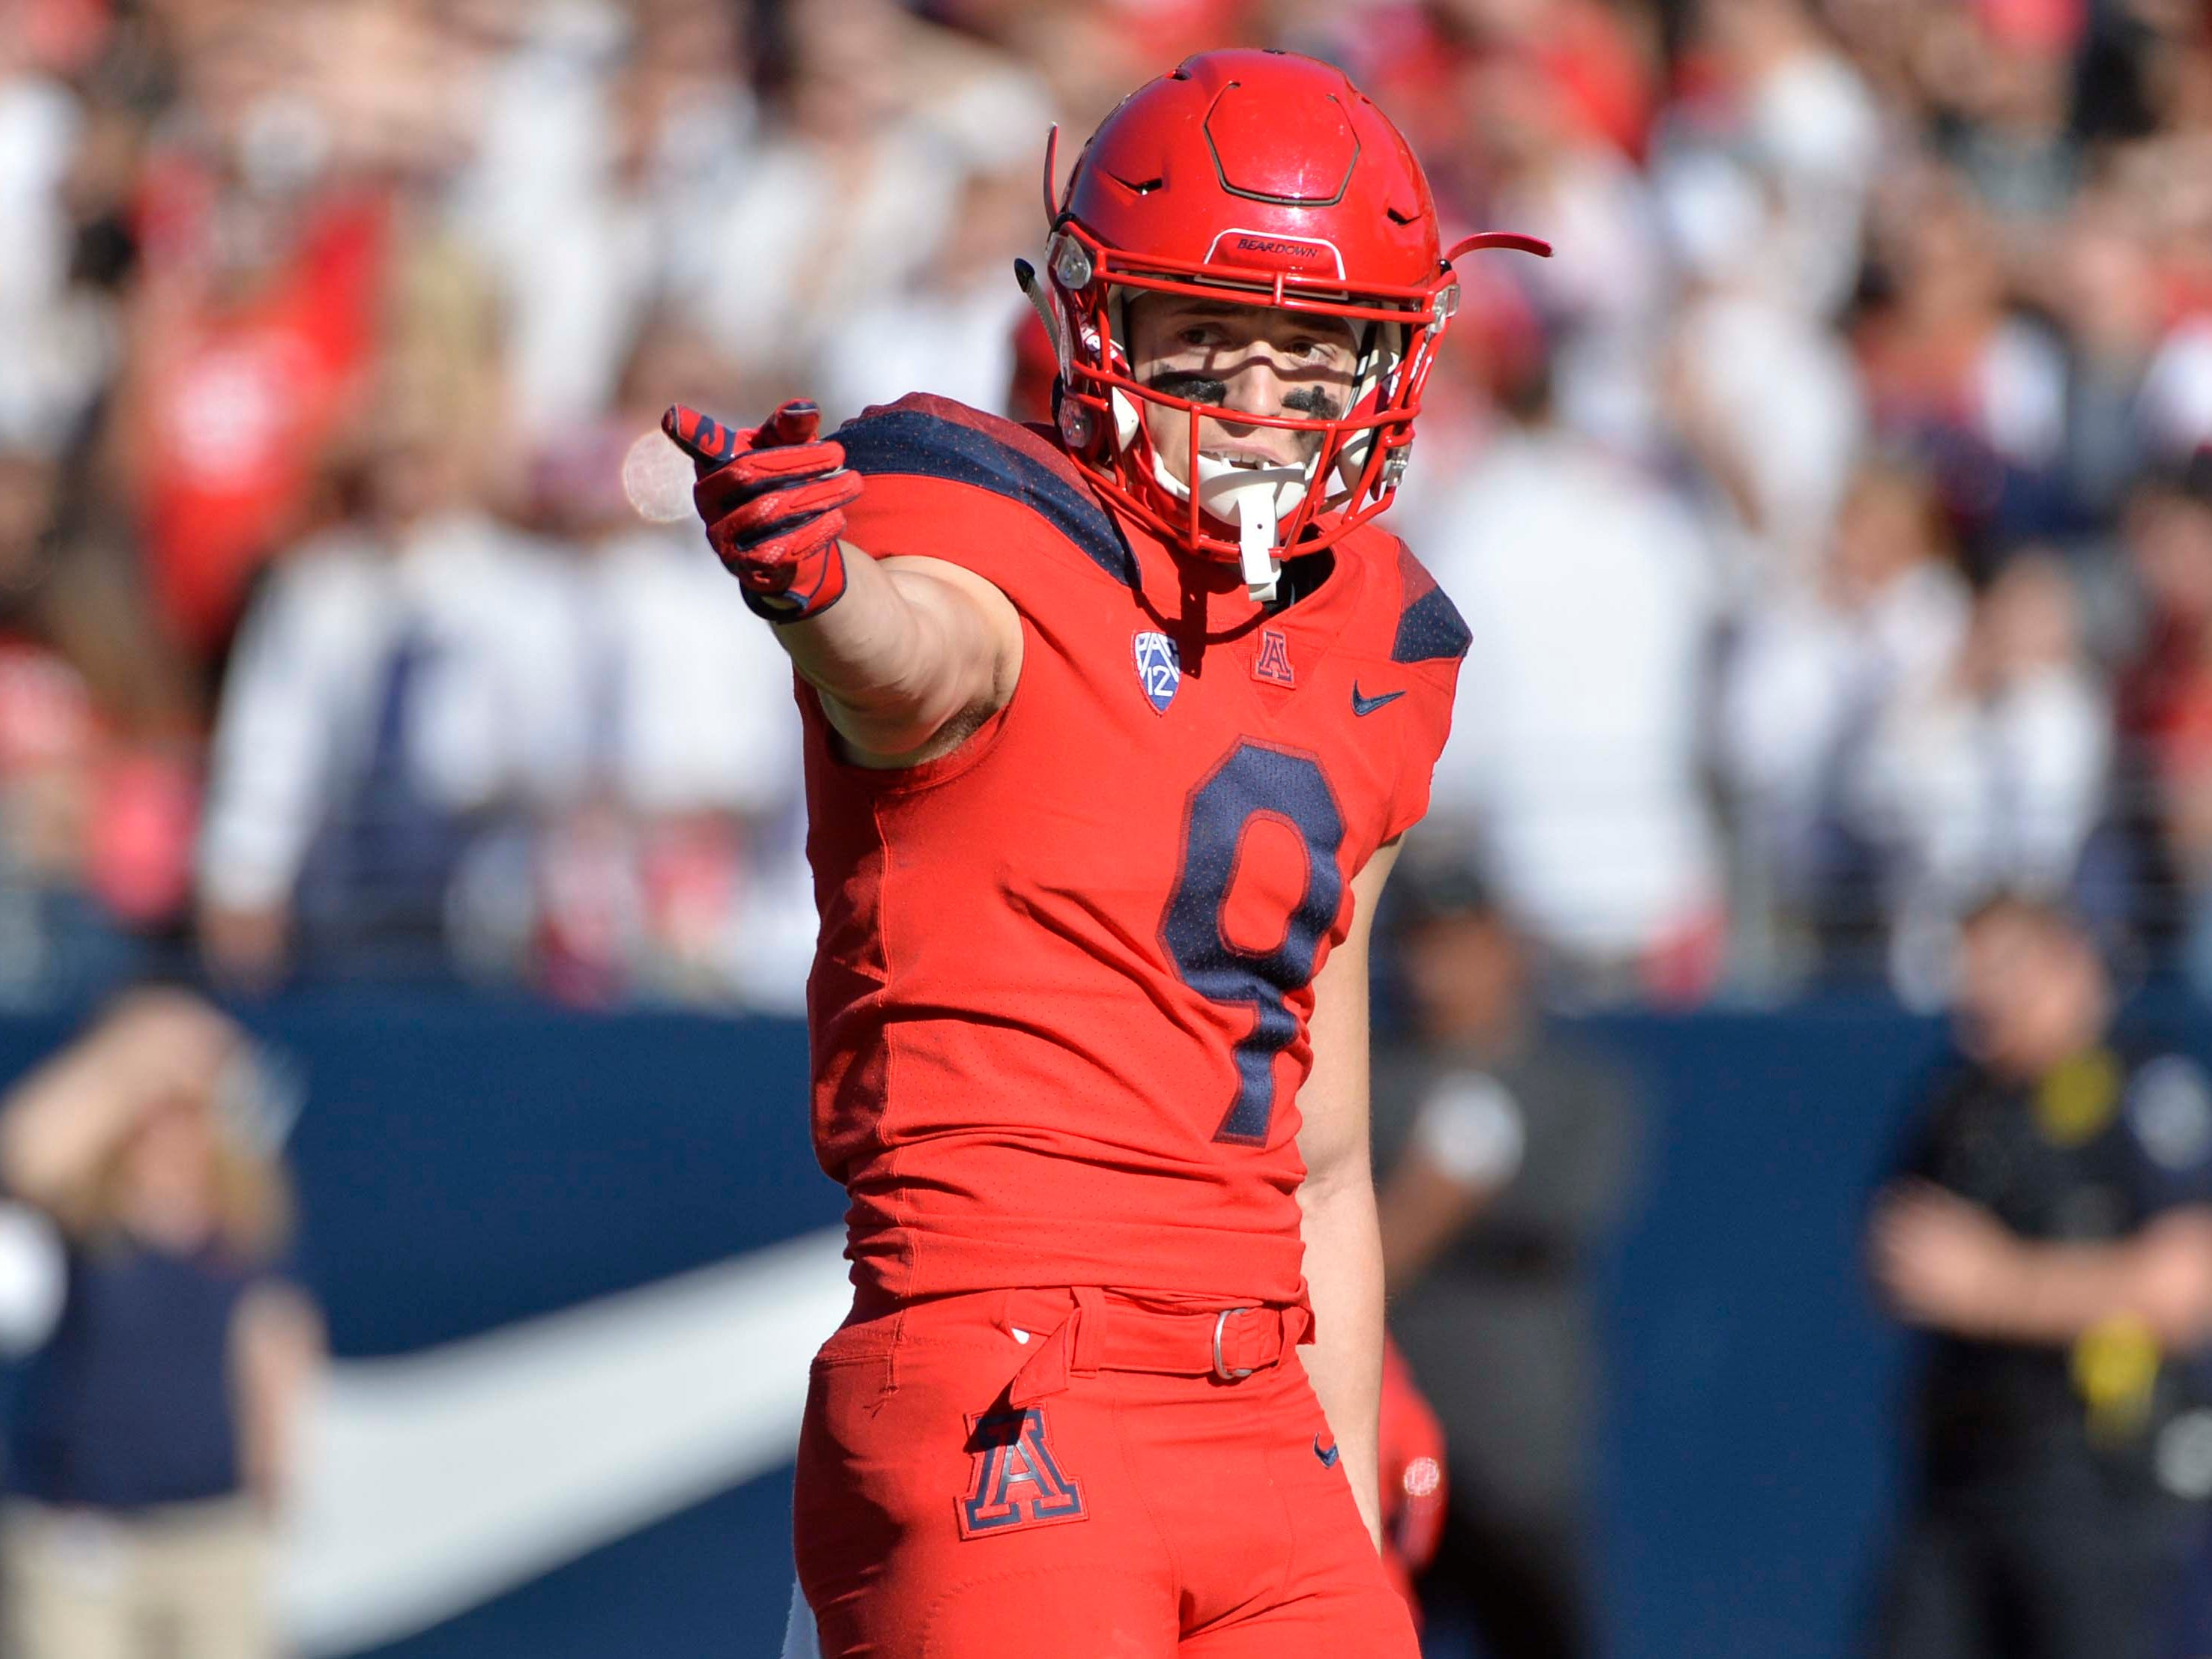 Nov 24, 2018; Tucson, AZ, USA; Arizona Wildcats wide receiver Tony Ellison (9) signals during the first half against the Arizona State Sun Devils in the Territorial Cup at Arizona Stadium. Mandatory Credit: Casey Sapio-USA TODAY Sports